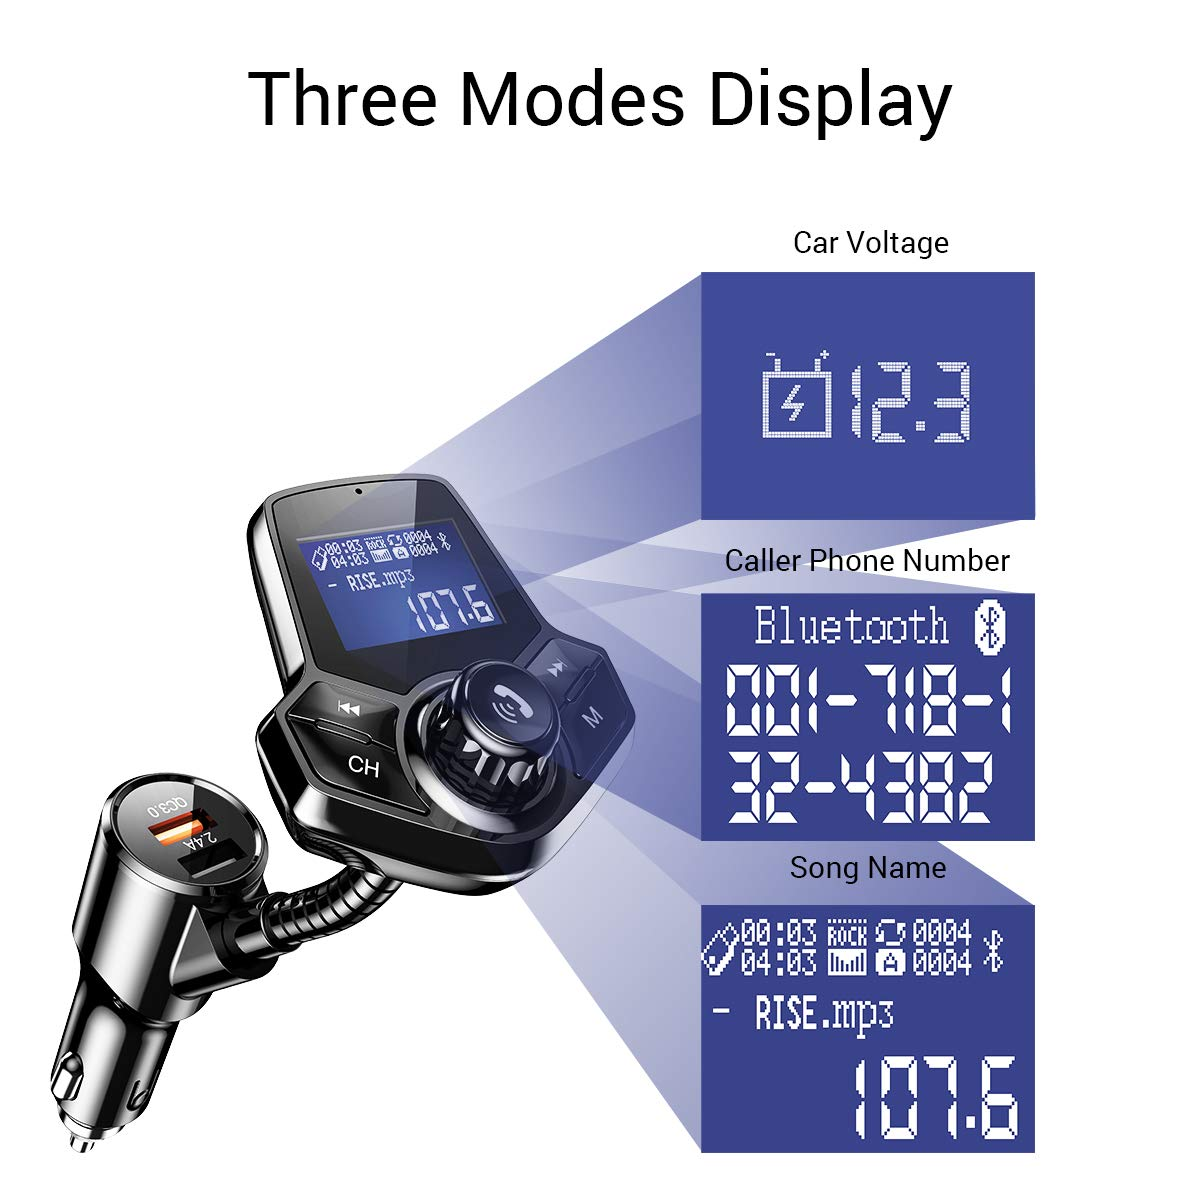 Bluetooth FM Transmitter for Car, QC3.0 Fast Charger Fm Transmitter Bluetooth, Wireless Car Audio Adapter Hands-Free Kit with 1.44'' Display for AUX Input/Output, TF Card and U Disk by Ainope by Ainope (Image #6)